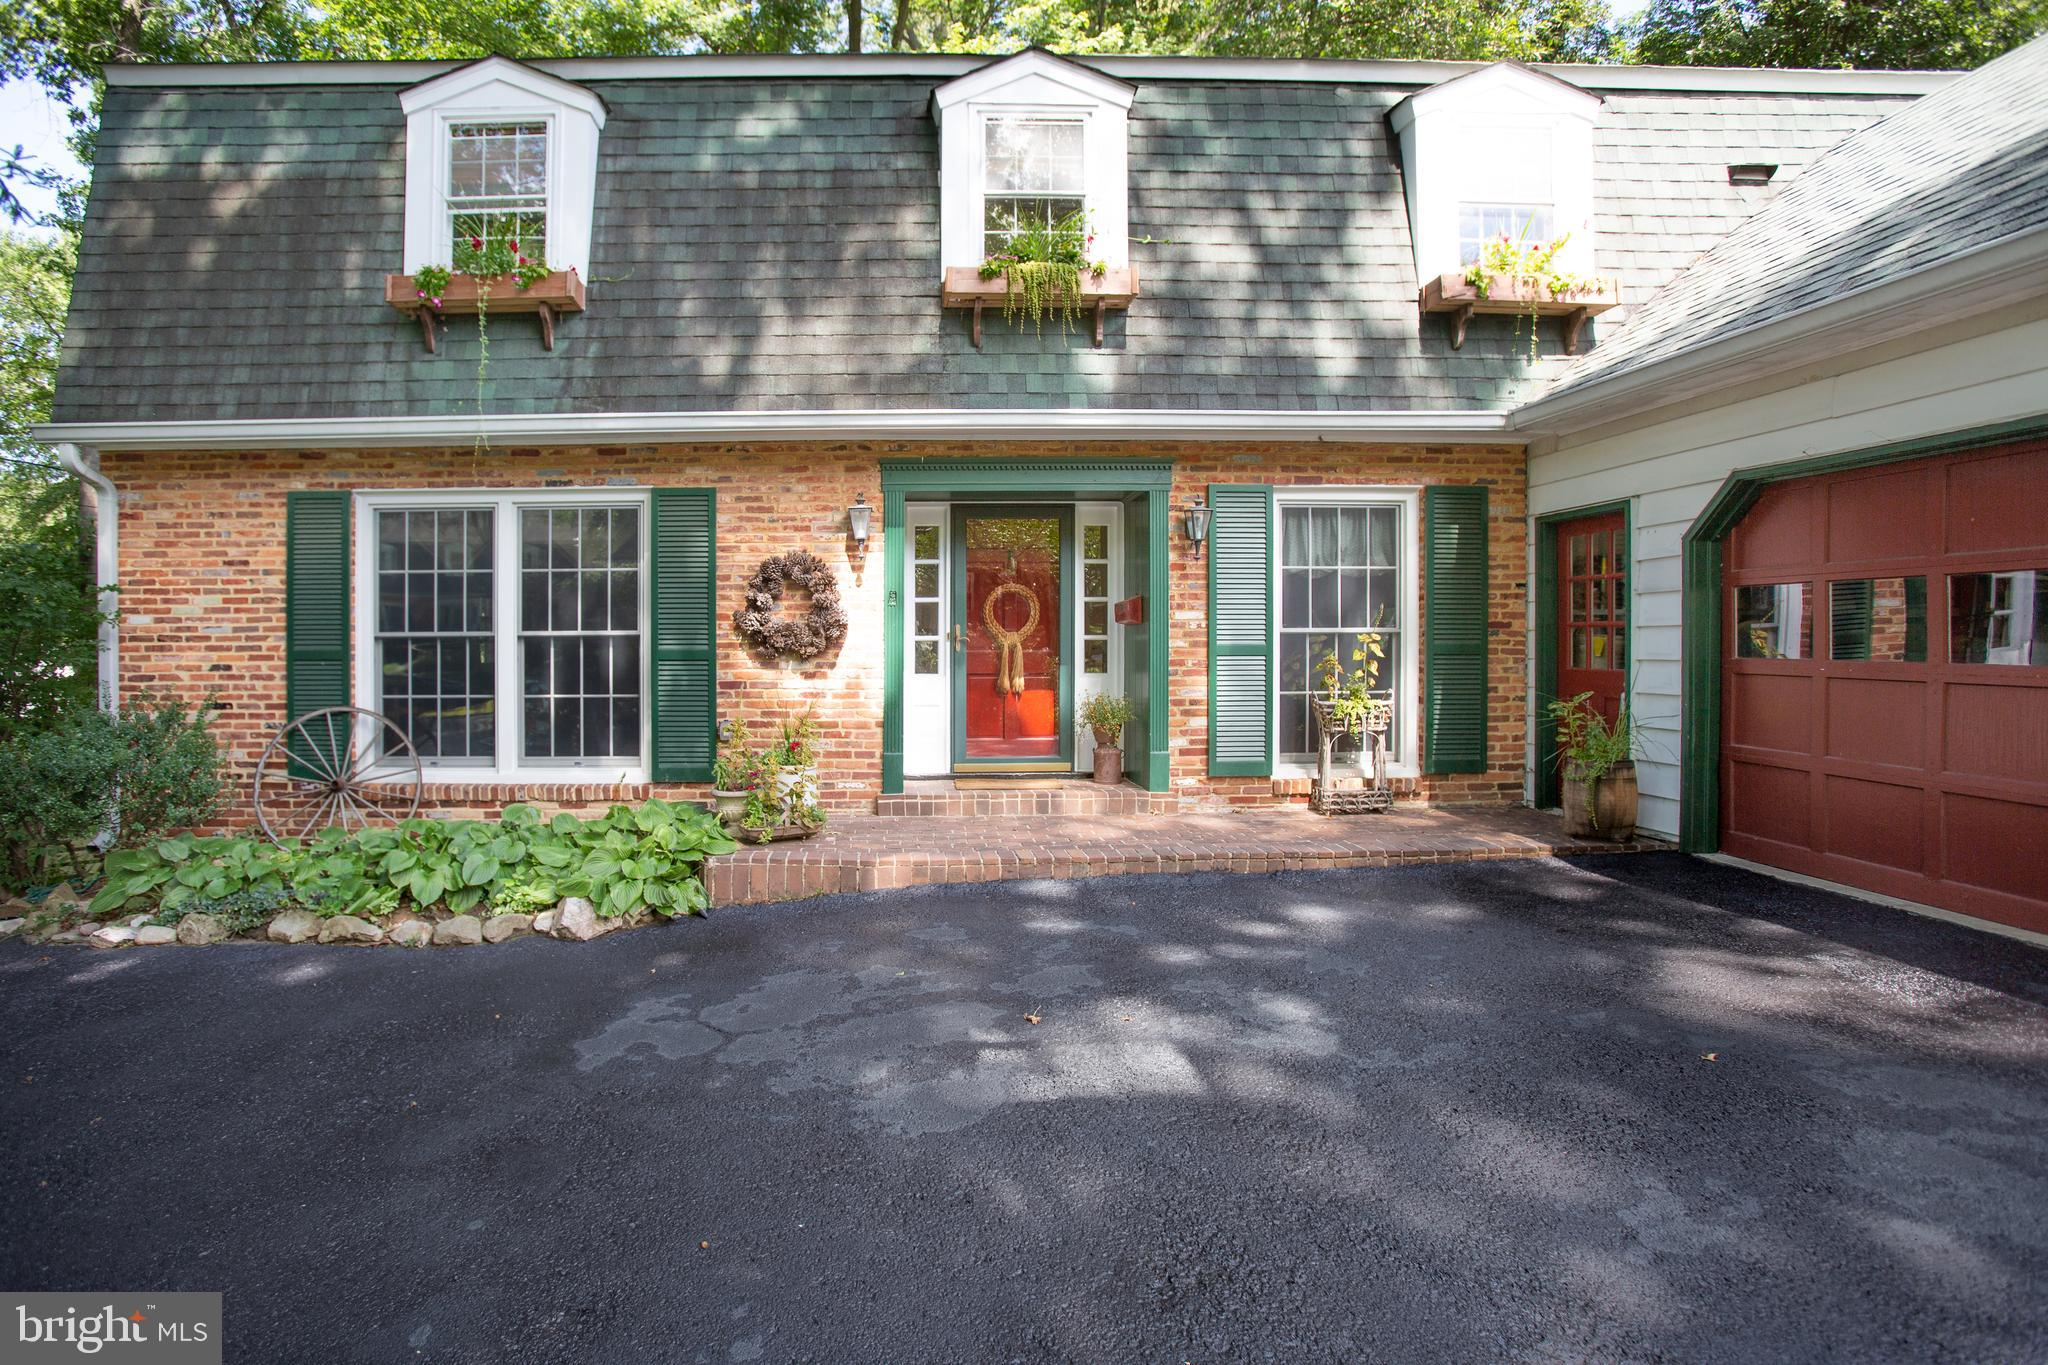 Location, location, location! In sought after Camelot on ~ + acre wooded lot. Minutes from 495, INOVA Hospital Campus and Mosaic District. Walk to community pool and Camelot Elementary School. This home was designed with the flexibility to have a first-floor master, but the 5 upper level bedrooms and 4 ~ bathrooms provide ample space for large families. 2800 + sq ft above grade living space plus finished walk-out basement with full bath. Screened-in porch, flagstone patio, updated appliances, counter tops and hardwood floors on main and upper levels!